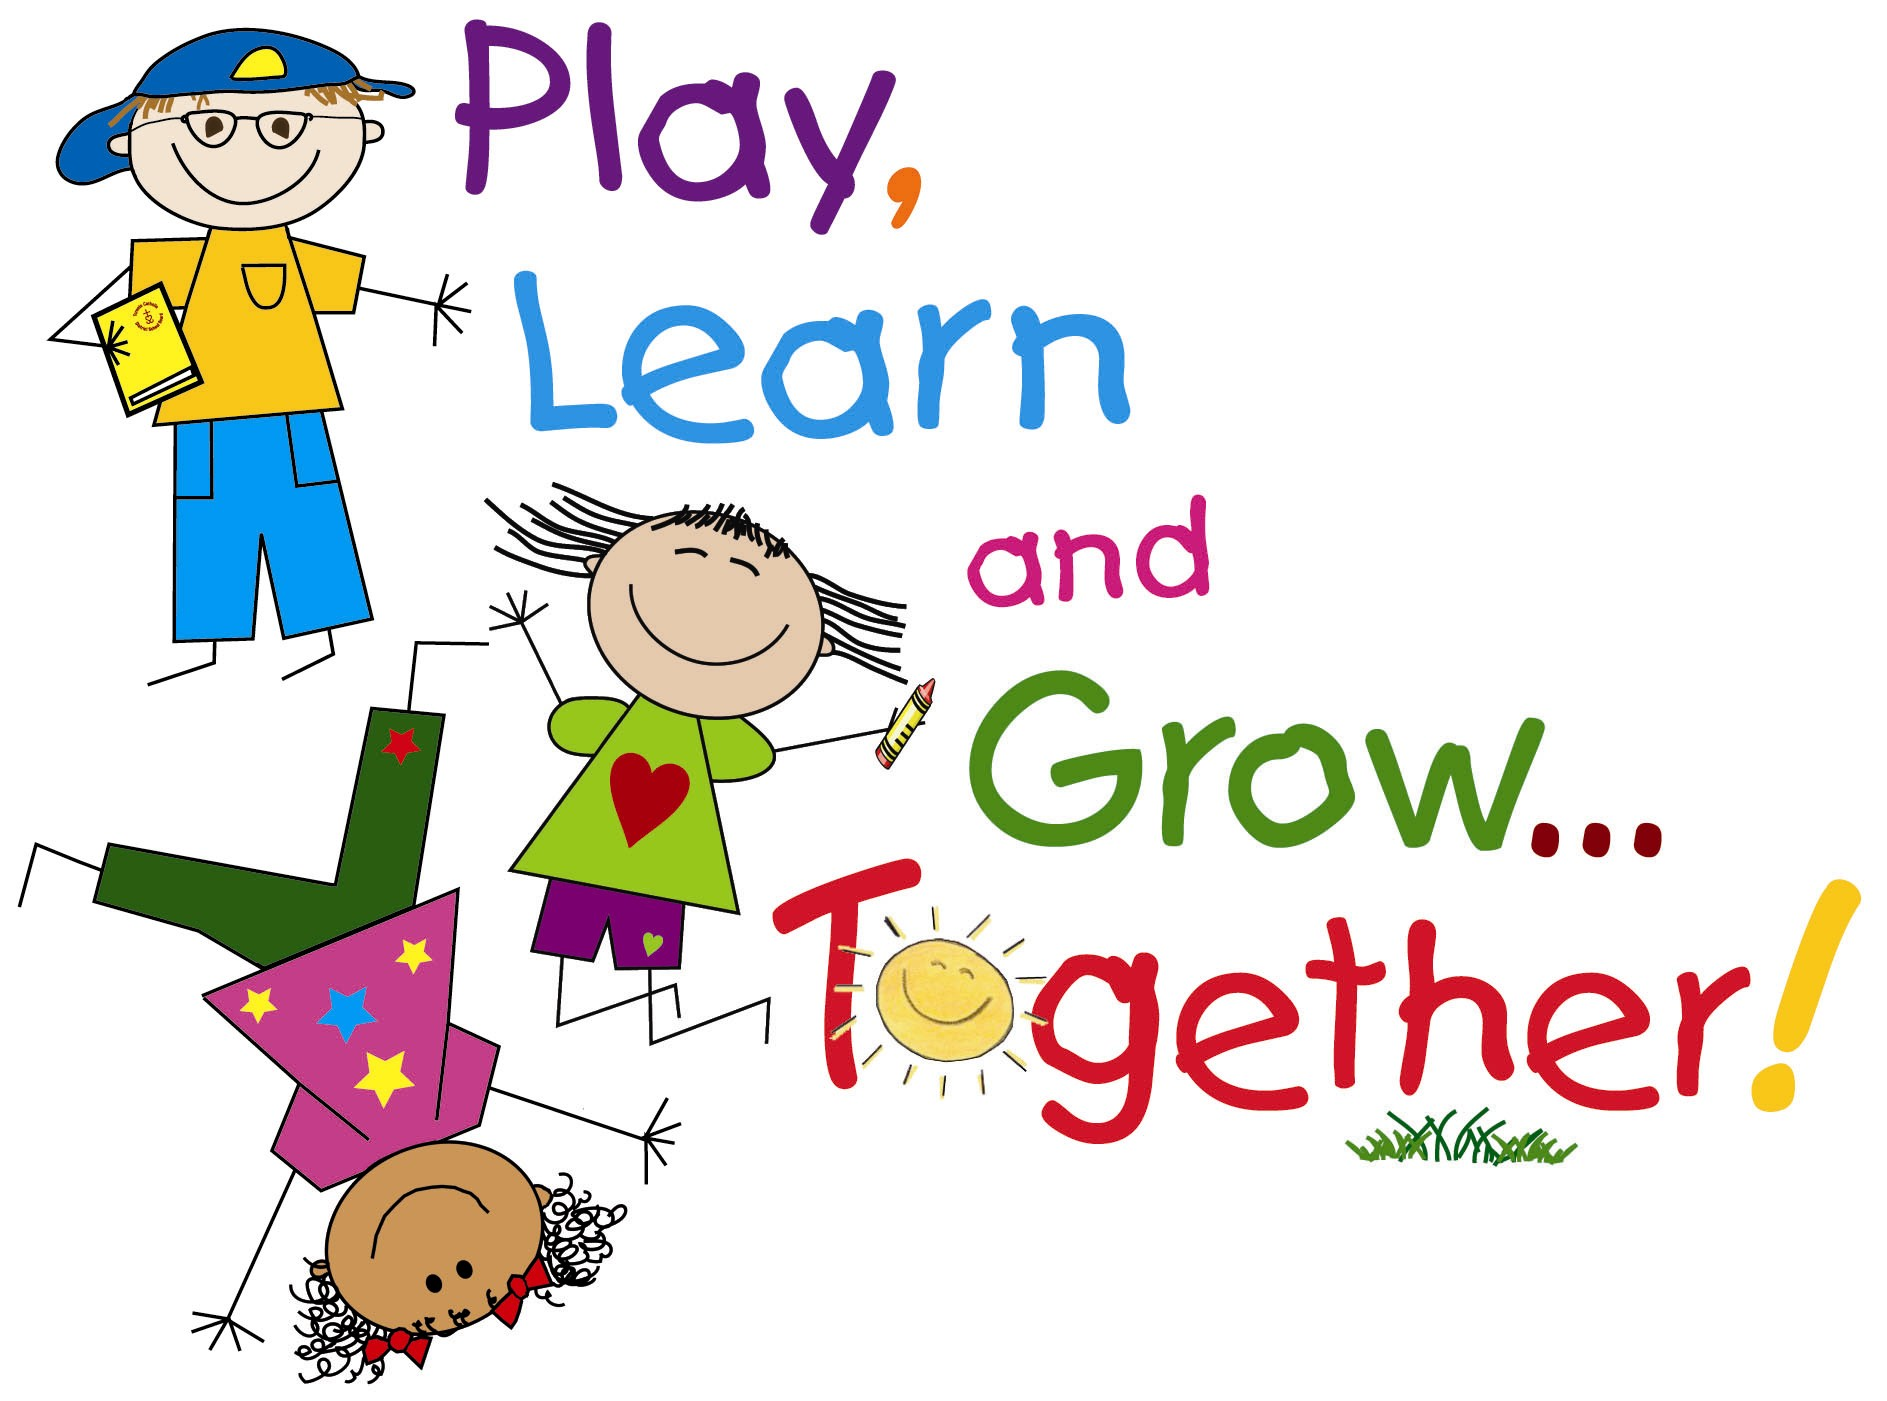 Play, learn, and grow together.